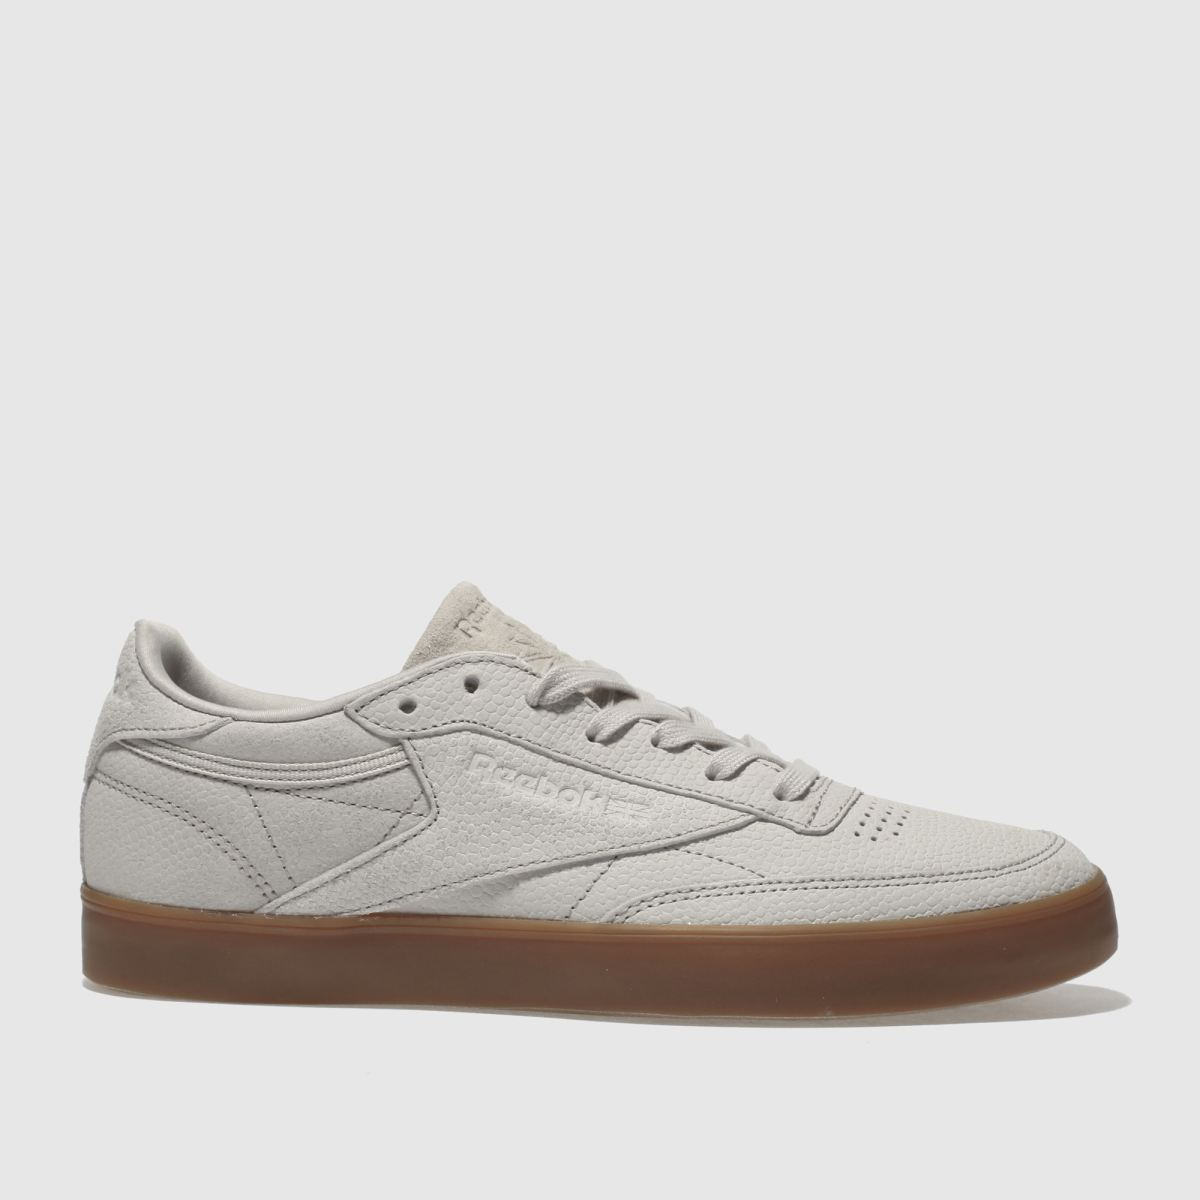 Reebok Stone Club C 85 Fvs Palm Springs Trainers